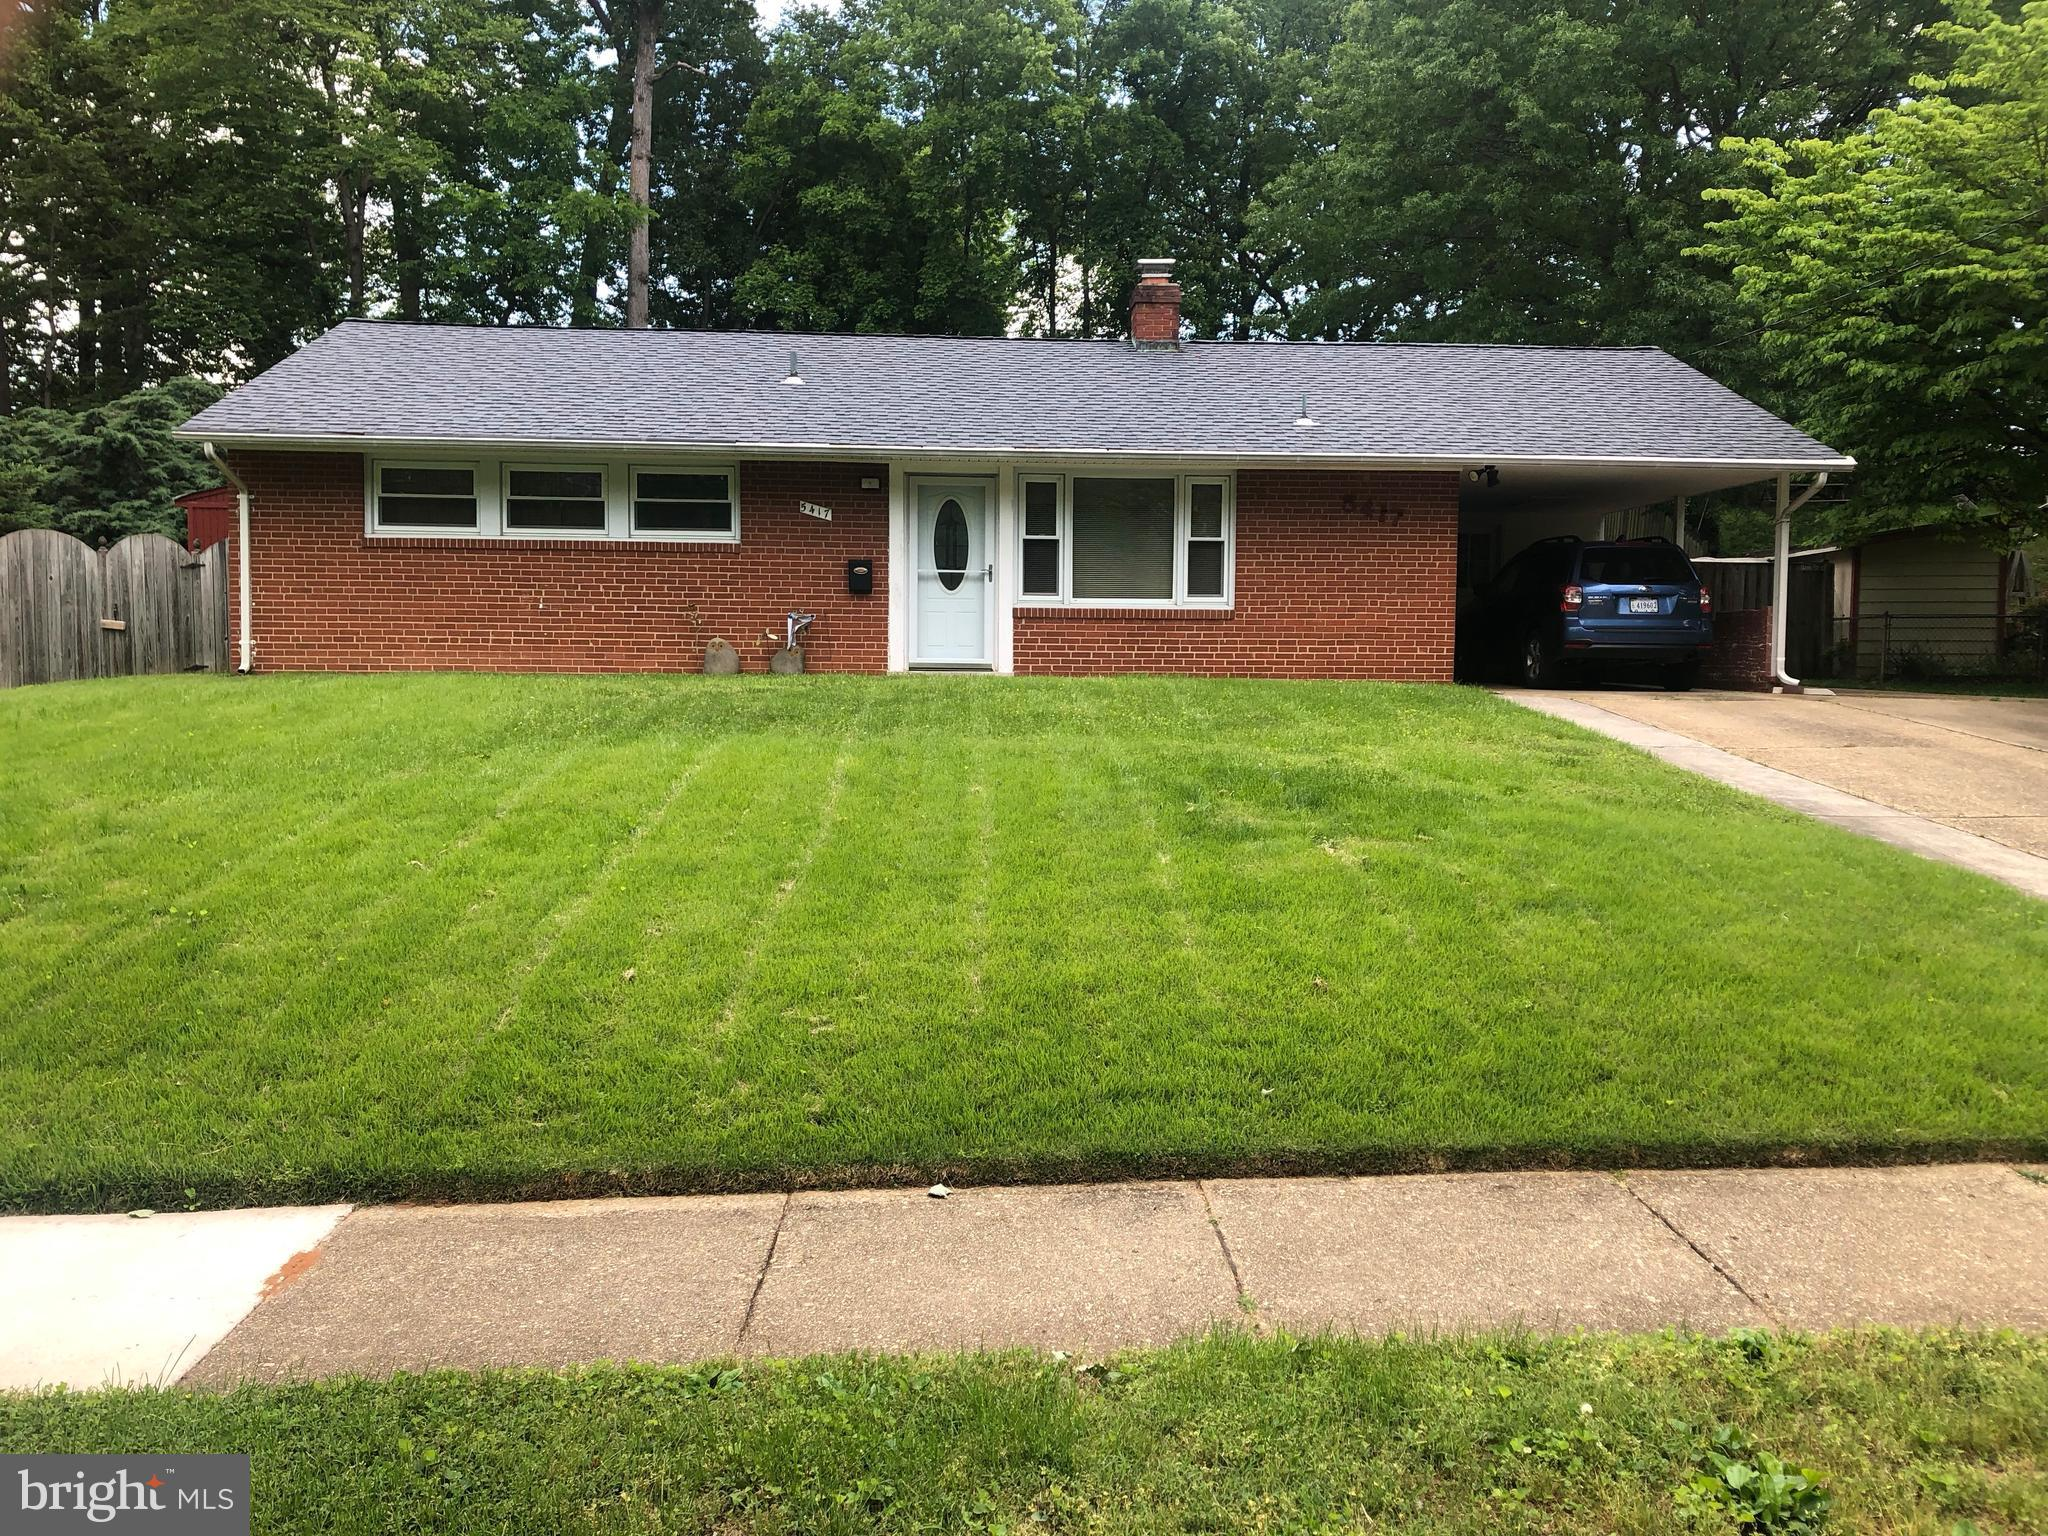 One level home located just off of Lake Accotink! With access to woods, creeks, and trails this home is a nature lovers paradise. First thing you will see is a massive yard, completely fenced in at the back. Plenty of recent updates were done including the windows, furnace, AC system, and roof. Throughout the home you will find a mixture of beautiful hardwoods, soft carpet, and cozy wooden walls. Perfectly located in a tucked away and beautiful area while still being conveniently close to major roads and shops such as 495 and Braddock.